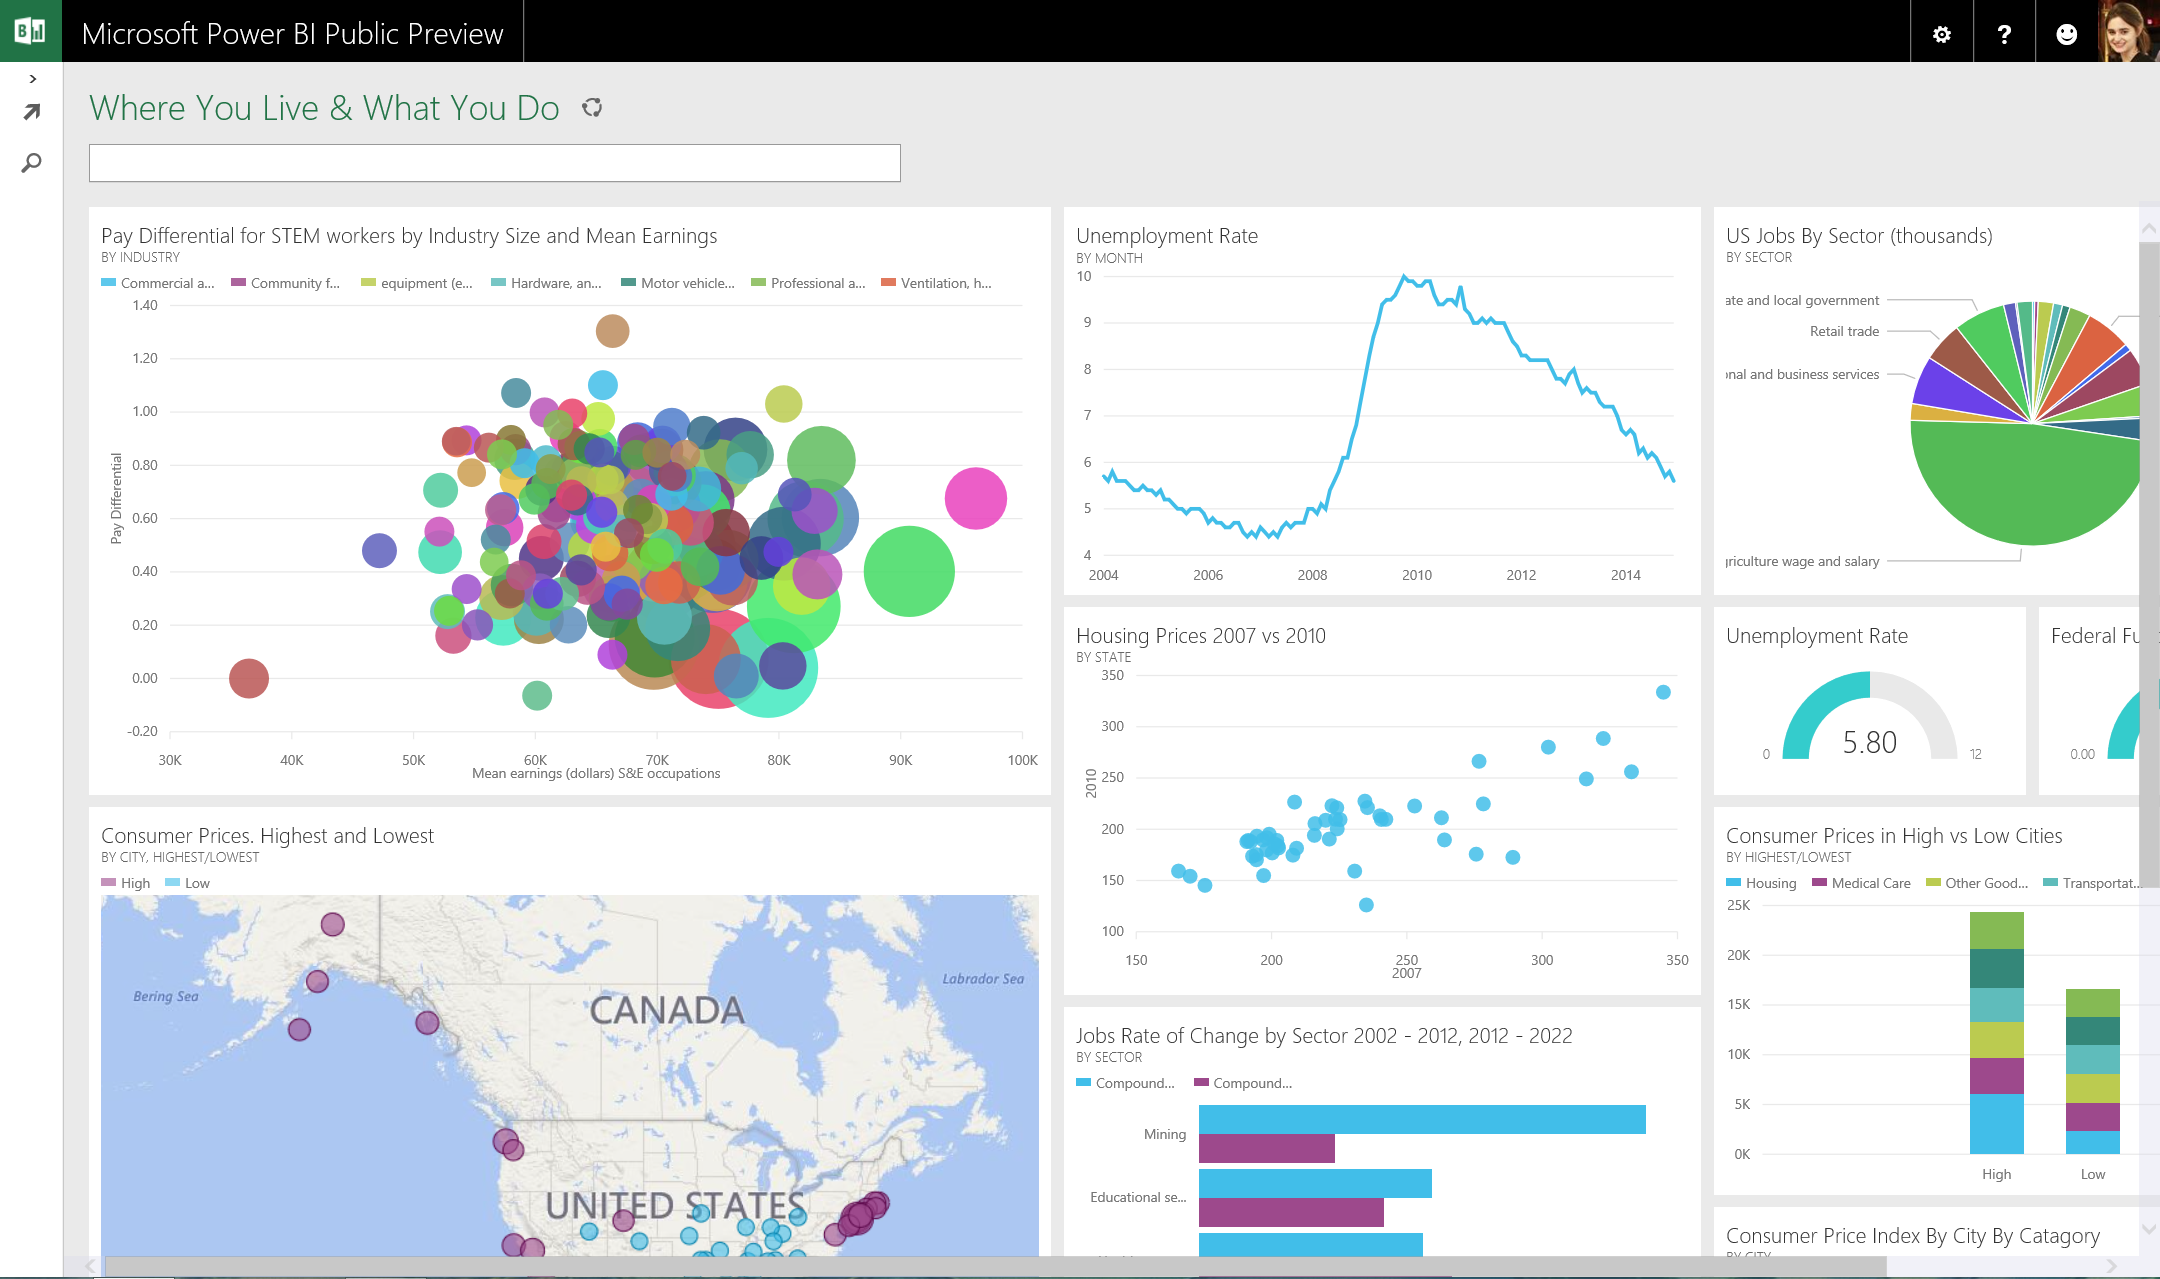 Microsoft Power BI visualization